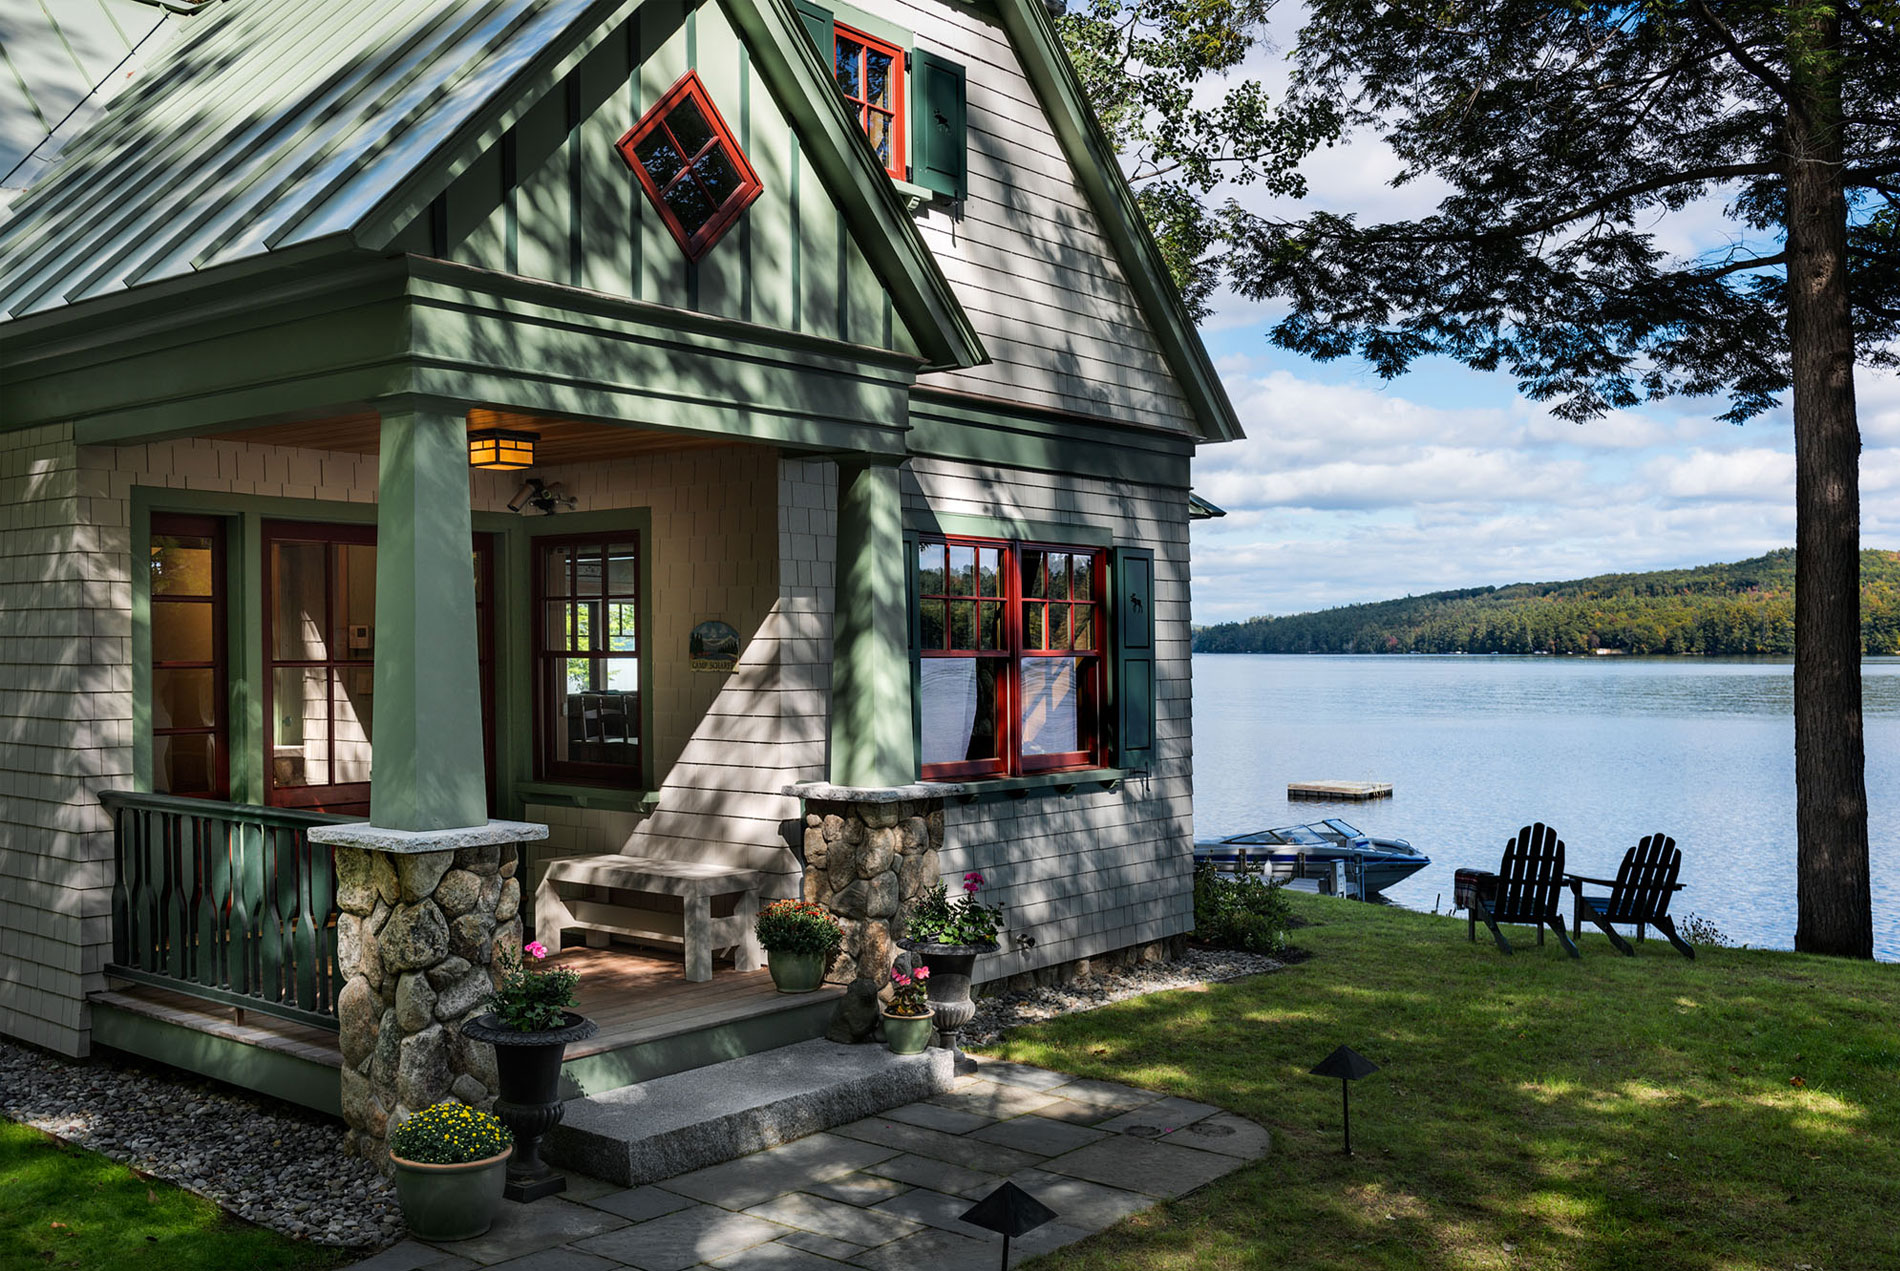 lakeside cottage in Maine